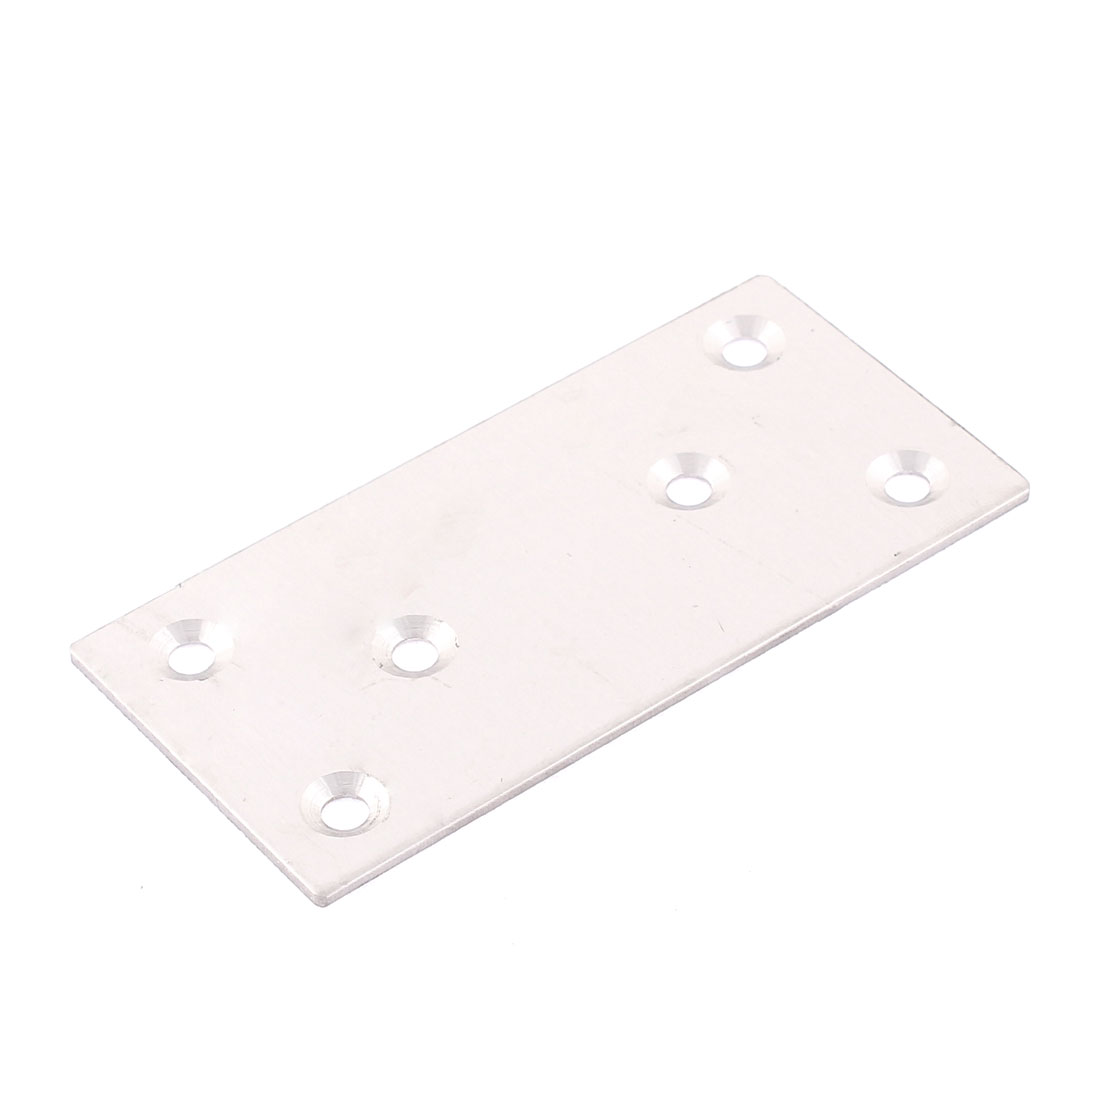 100 x 50mm Straight Flat Mending Repair Fixing Plate Joining Support